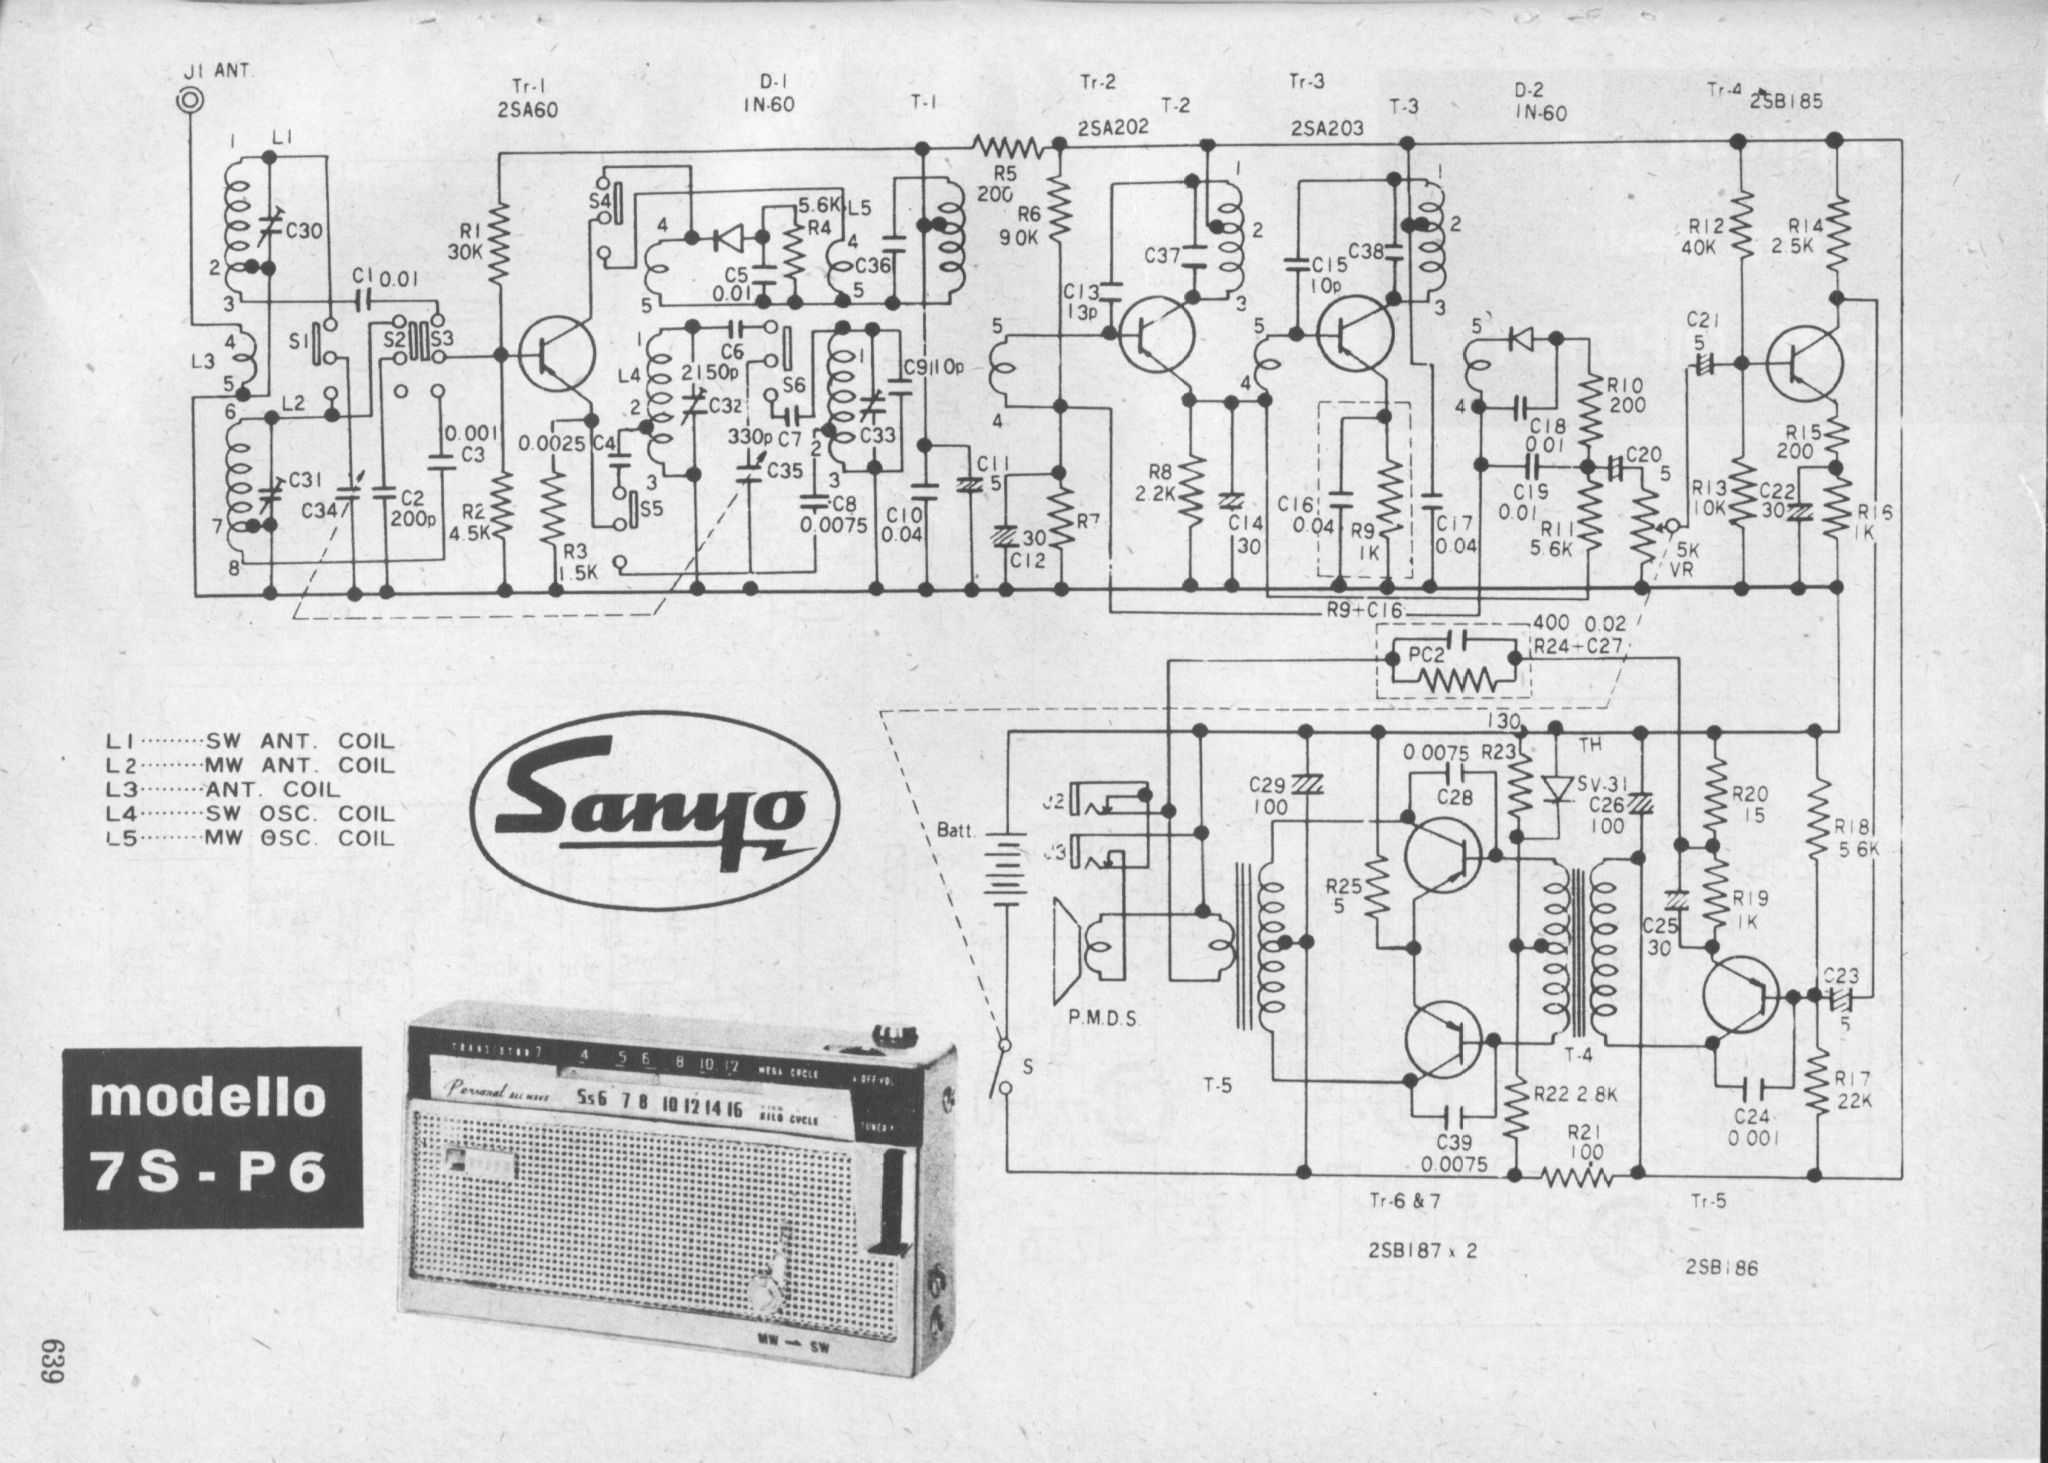 Transistor Diagrams F M Receiver Circuit Diagram Free Sanyo Mod 7s P6